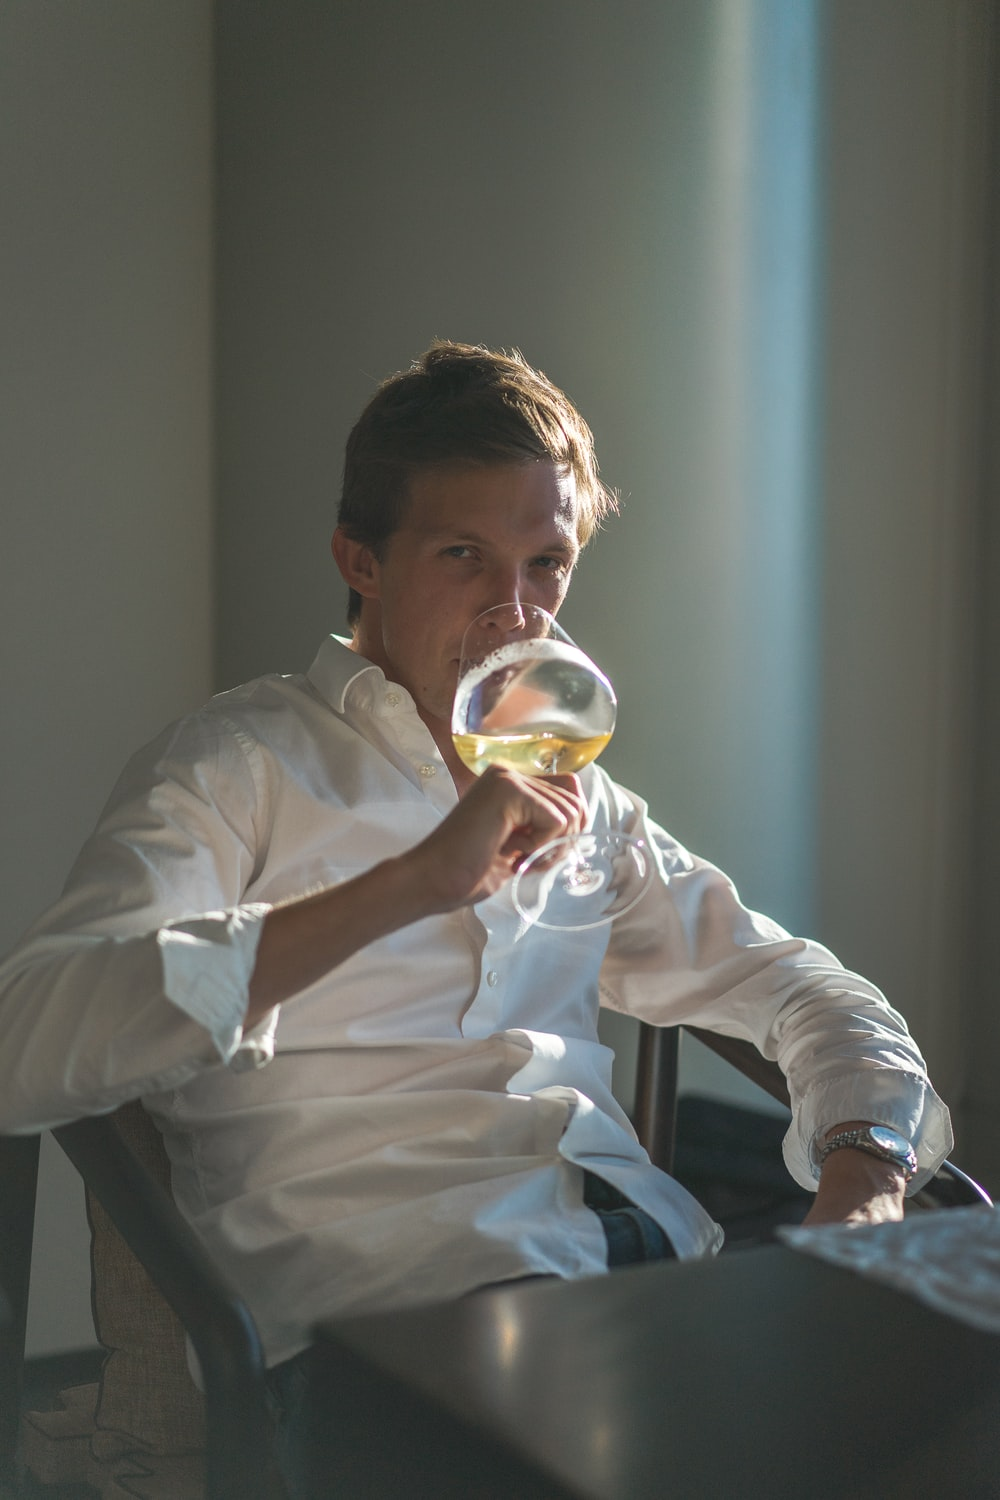 man in white dress shirt drinking from clear glass cup